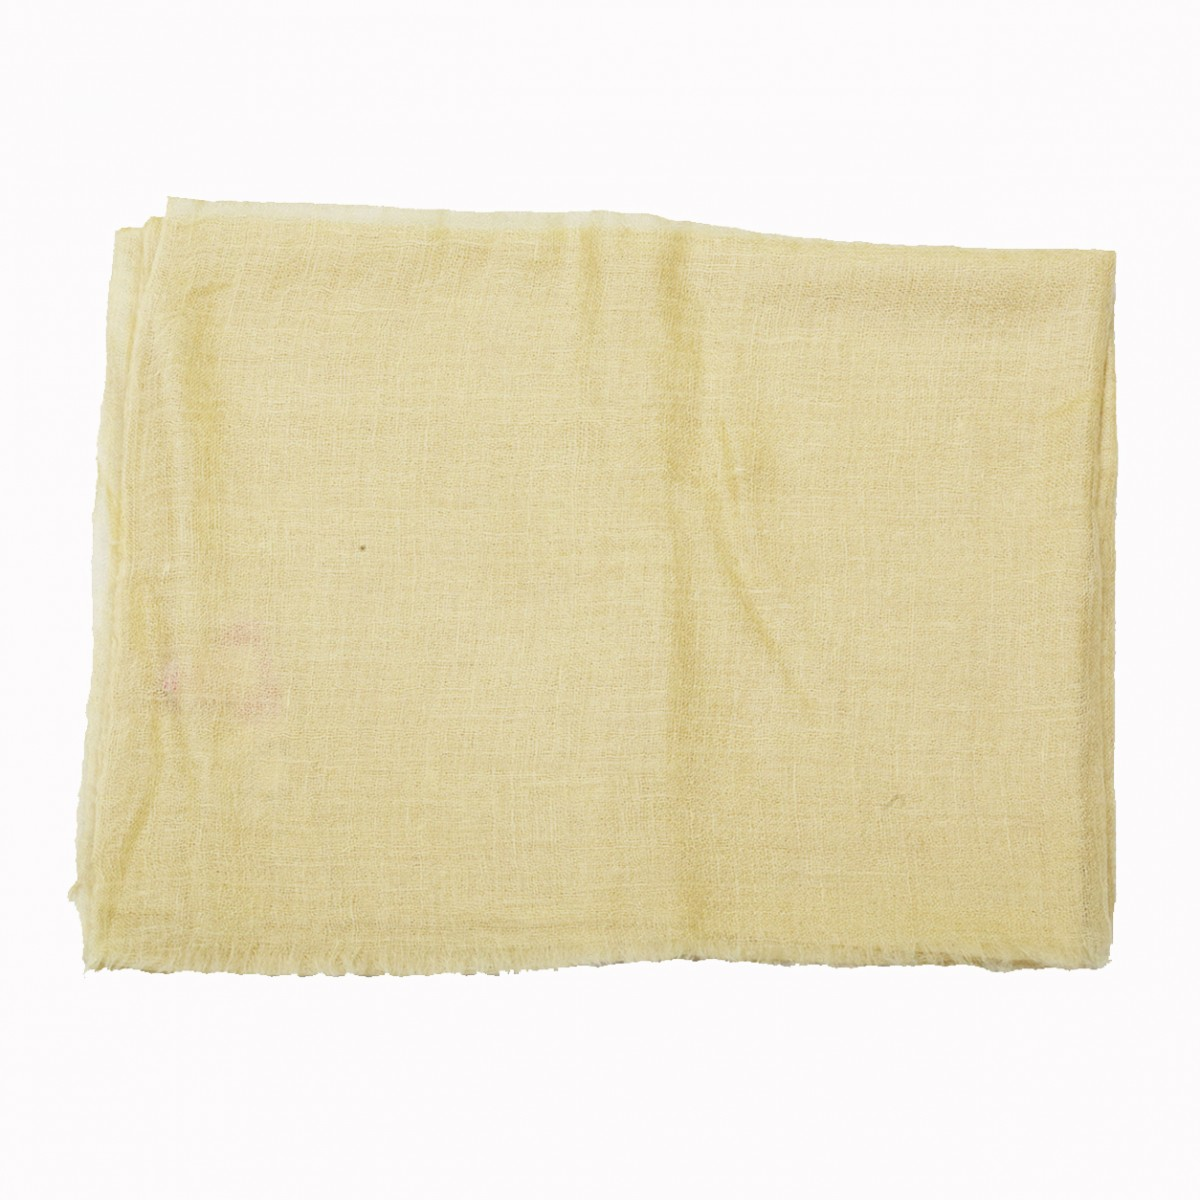 Sheer Pashmina Scarf -  Lemon Meringue